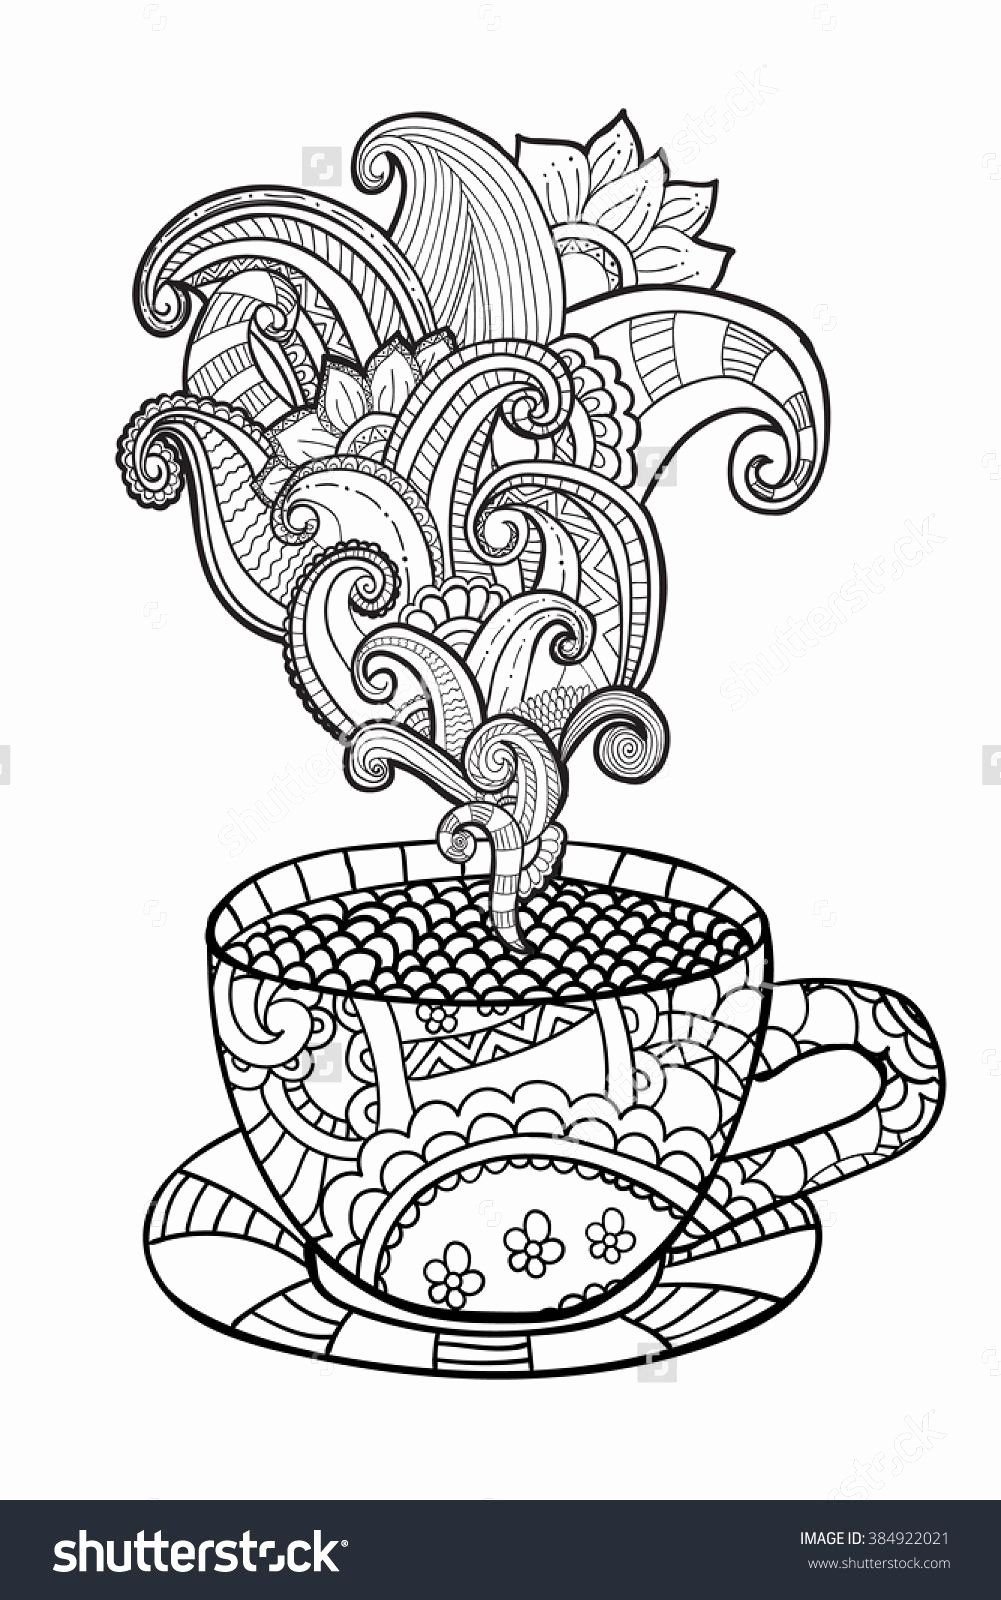 Coffee Cup Coloring Page Elegant Coffee Tea Cup Zentangle Style Coloring Page Shutterstock Coloring Pages Coloring Books Printable Coloring Pages